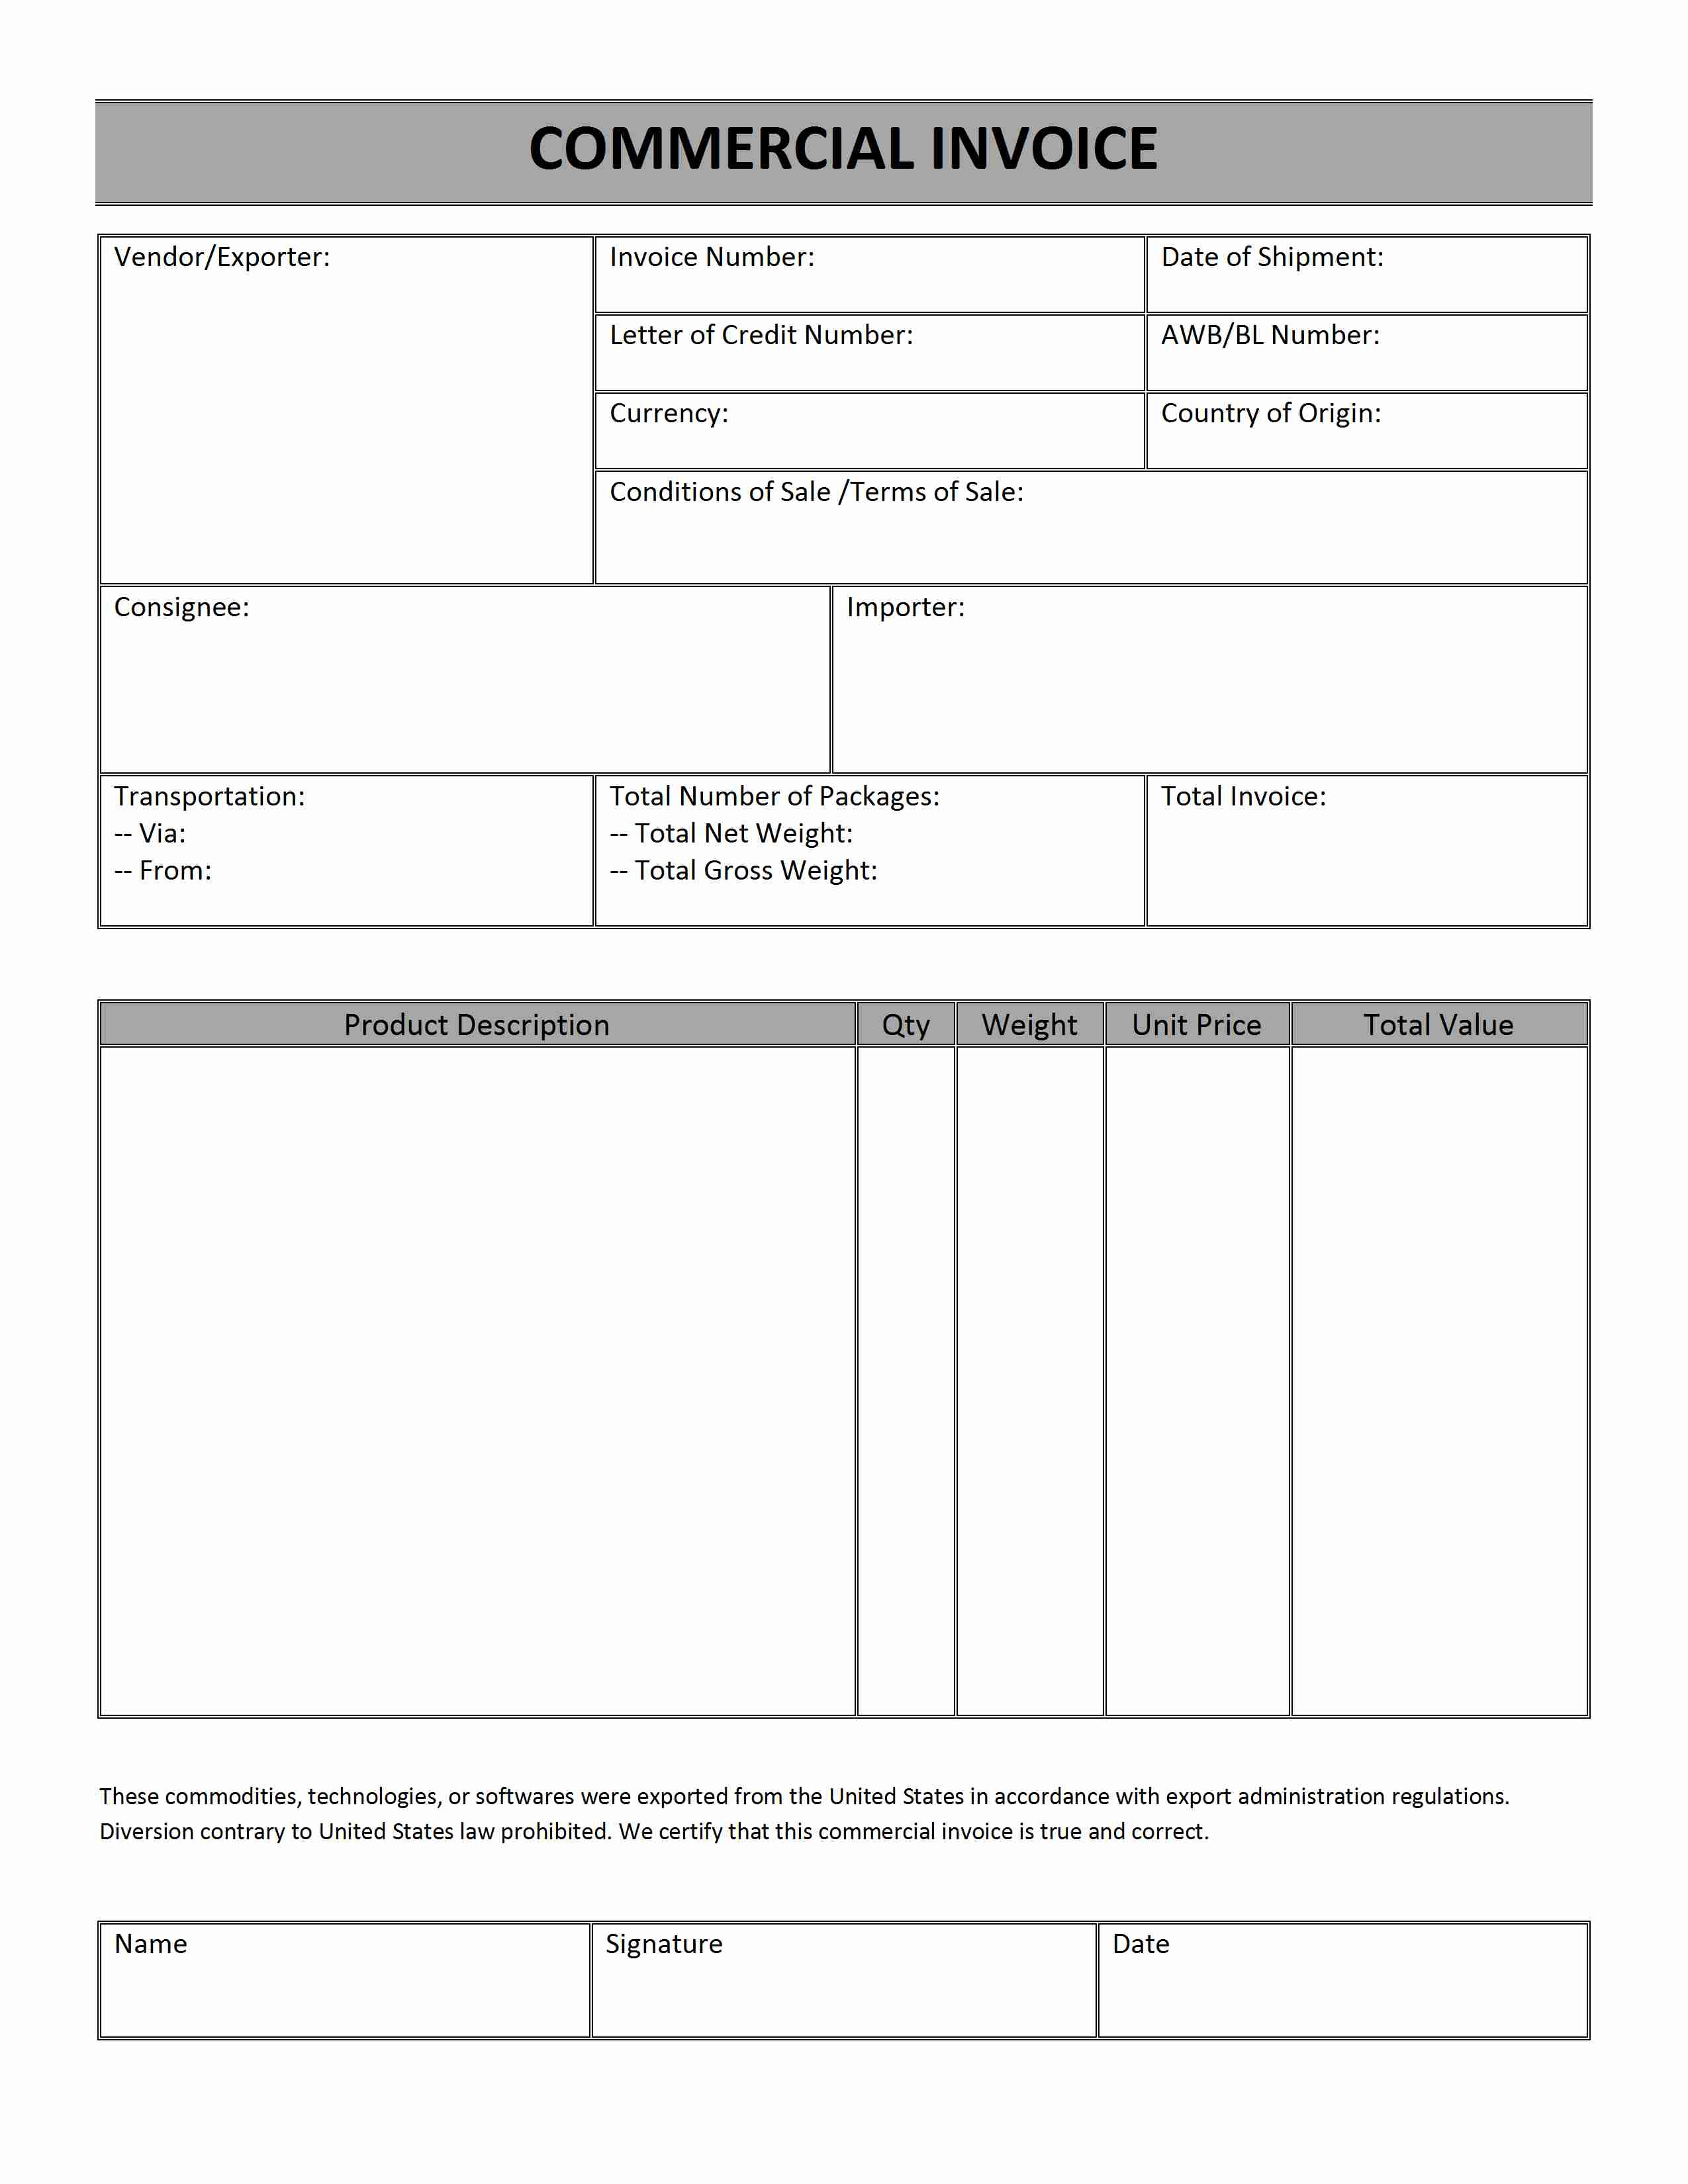 Breakupus  Surprising Printable Sales Invoice Simple Invoice Form Free Invoice  With Glamorous Printable Receipt Free  Free Printable Raffle Tickets  Receipt   Printable With Agreeable Standard Invoice Terms And Conditions Also Interest On Late Payment Of Invoices In Addition Late Payment Invoice Template And Pro Forma Invoices And Vat As Well As Payment Against Proforma Invoice Additionally Commercial Invoice Meaning From Happytomco With Breakupus  Glamorous Printable Sales Invoice Simple Invoice Form Free Invoice  With Agreeable Printable Receipt Free  Free Printable Raffle Tickets  Receipt   Printable And Surprising Standard Invoice Terms And Conditions Also Interest On Late Payment Of Invoices In Addition Late Payment Invoice Template From Happytomco